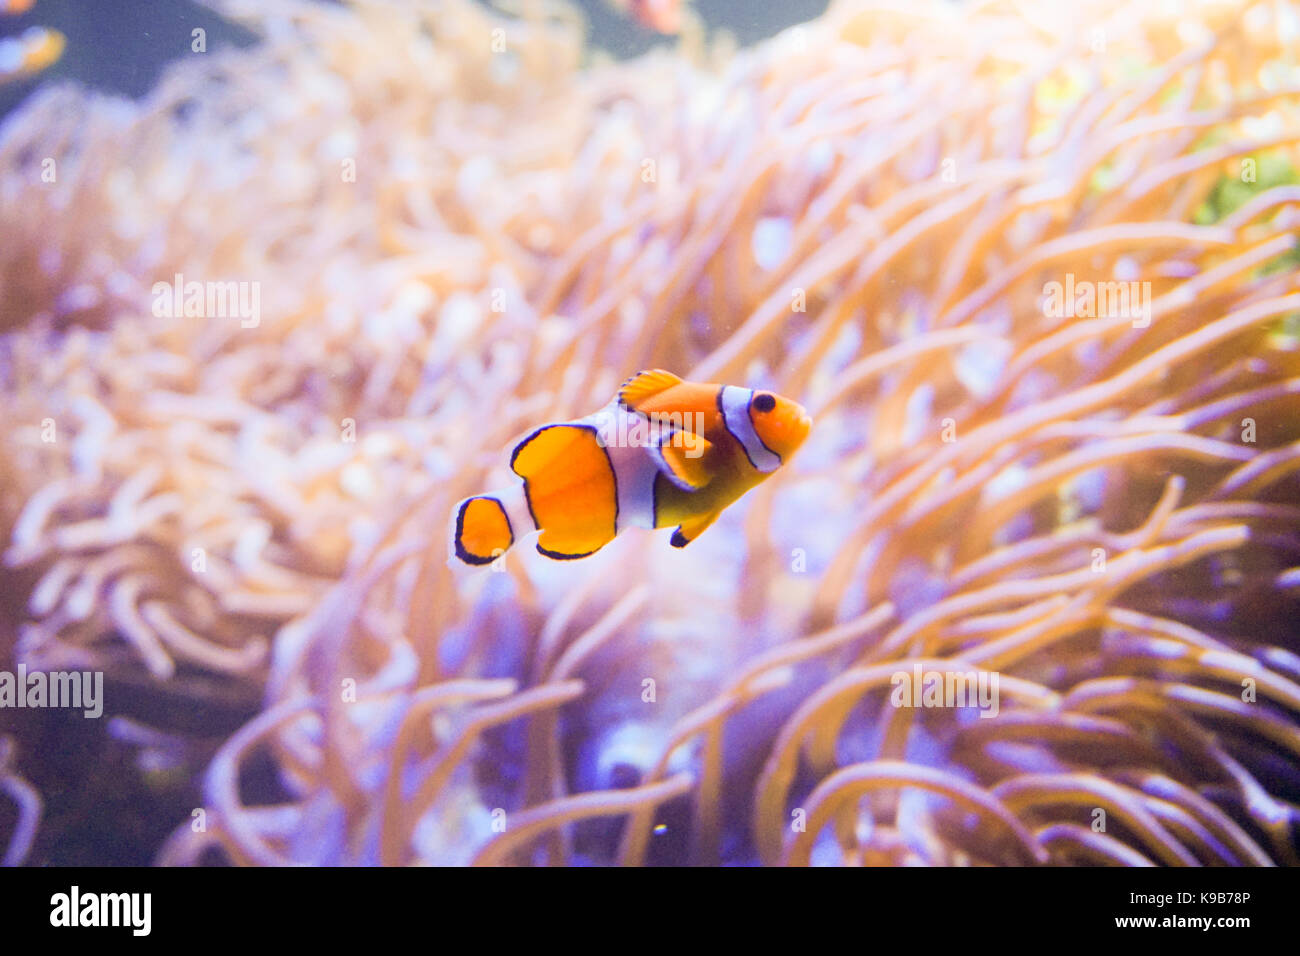 Clown fish white background stock photos clown fish for Blue clown fish